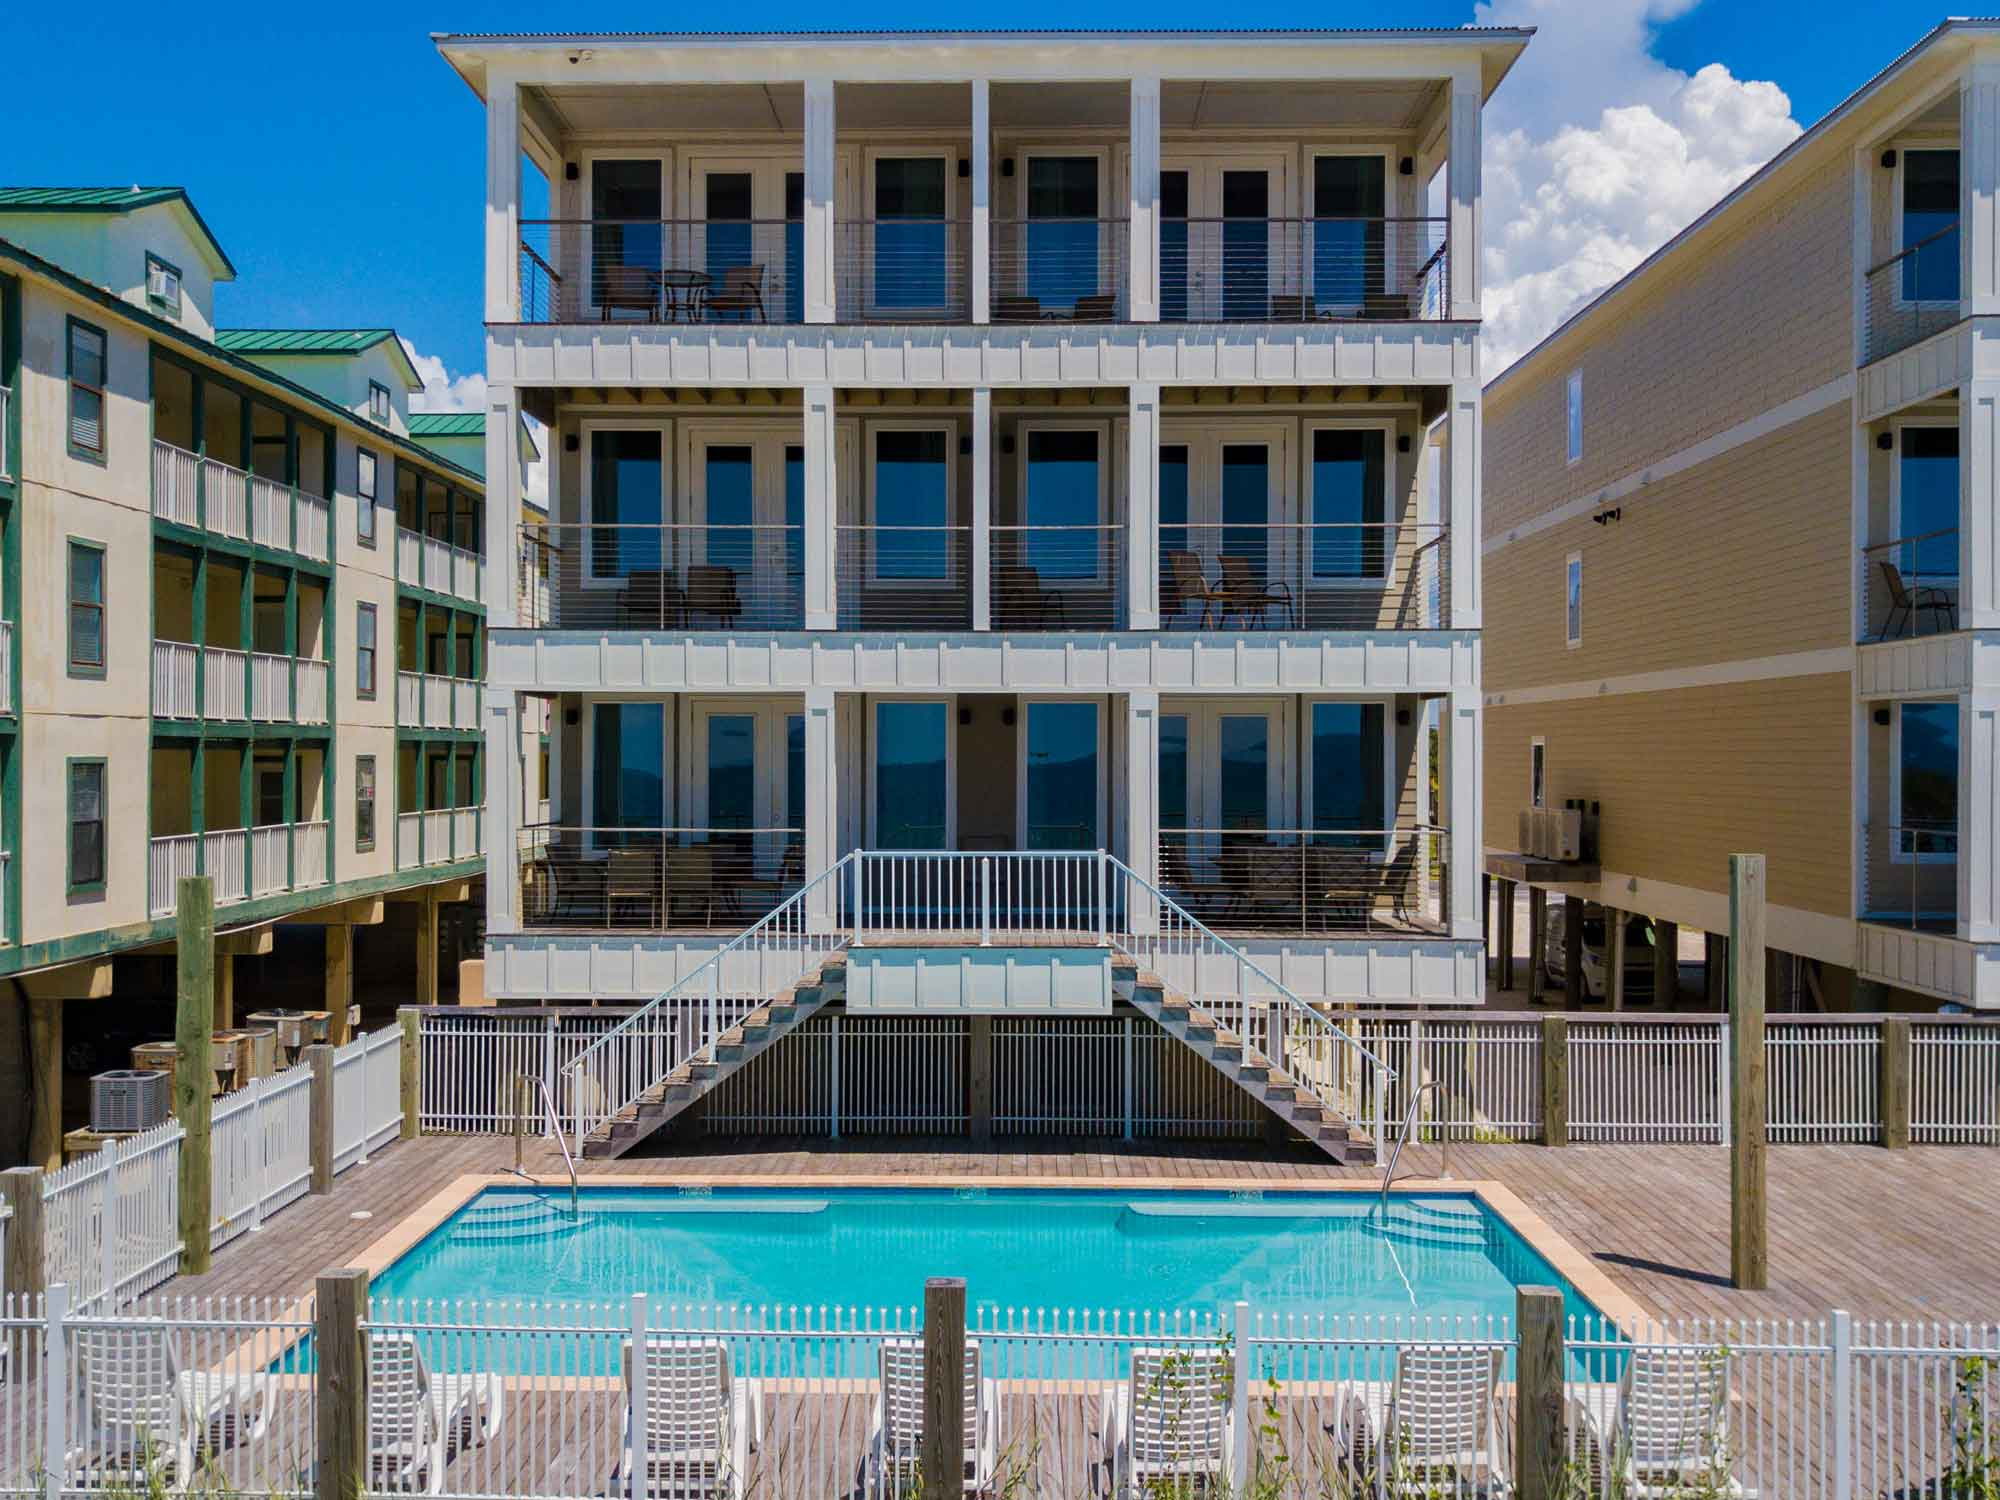 Gulf Shores Vacation Homes for the Holidays